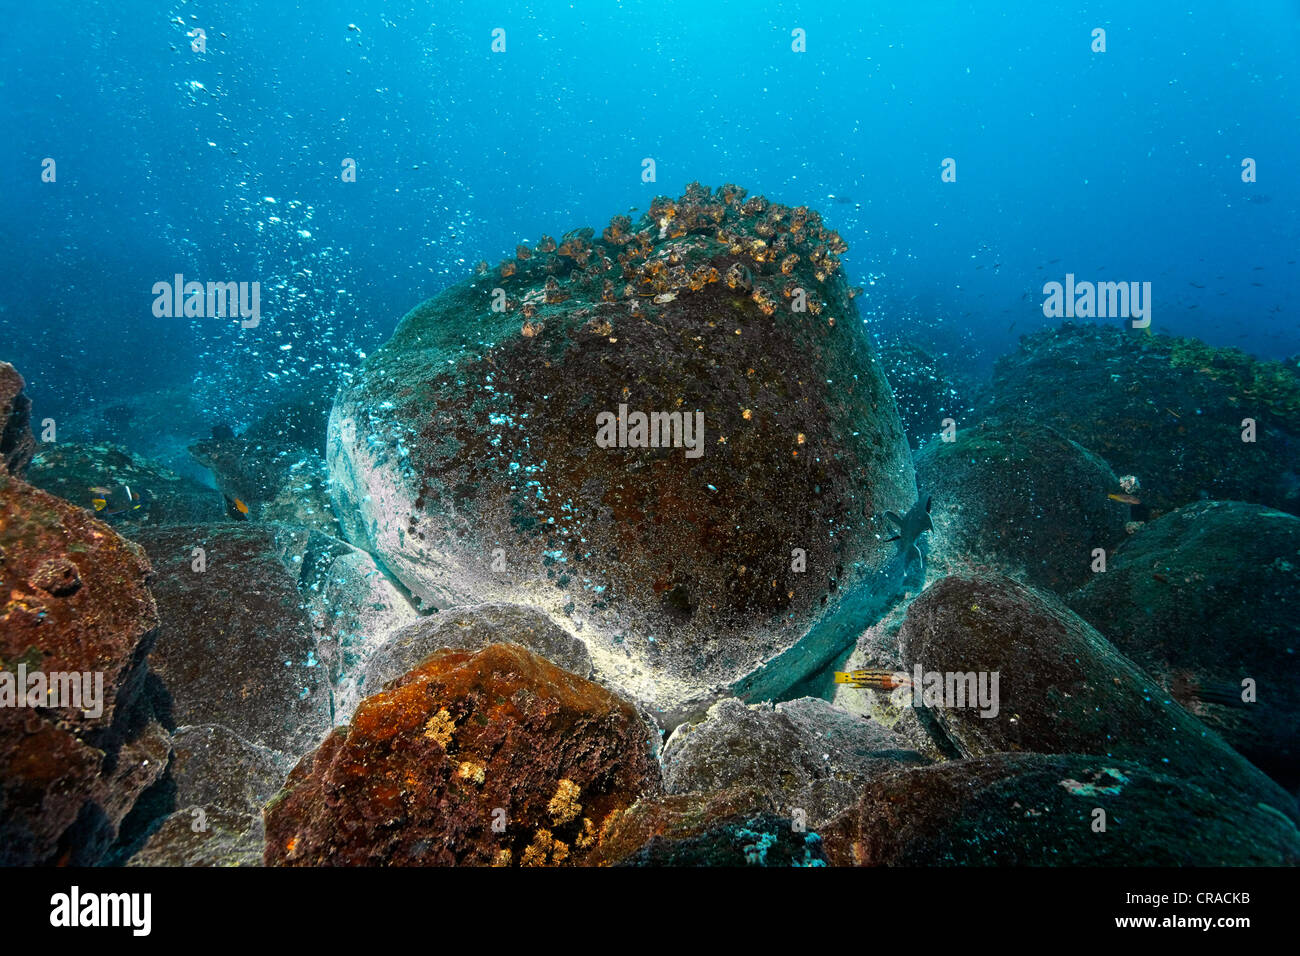 Rocks over a volcanic hot spot, white mineral deposits, hot springs, gas bubbles, overgrown, barnacles (Balanidae), - Stock Image